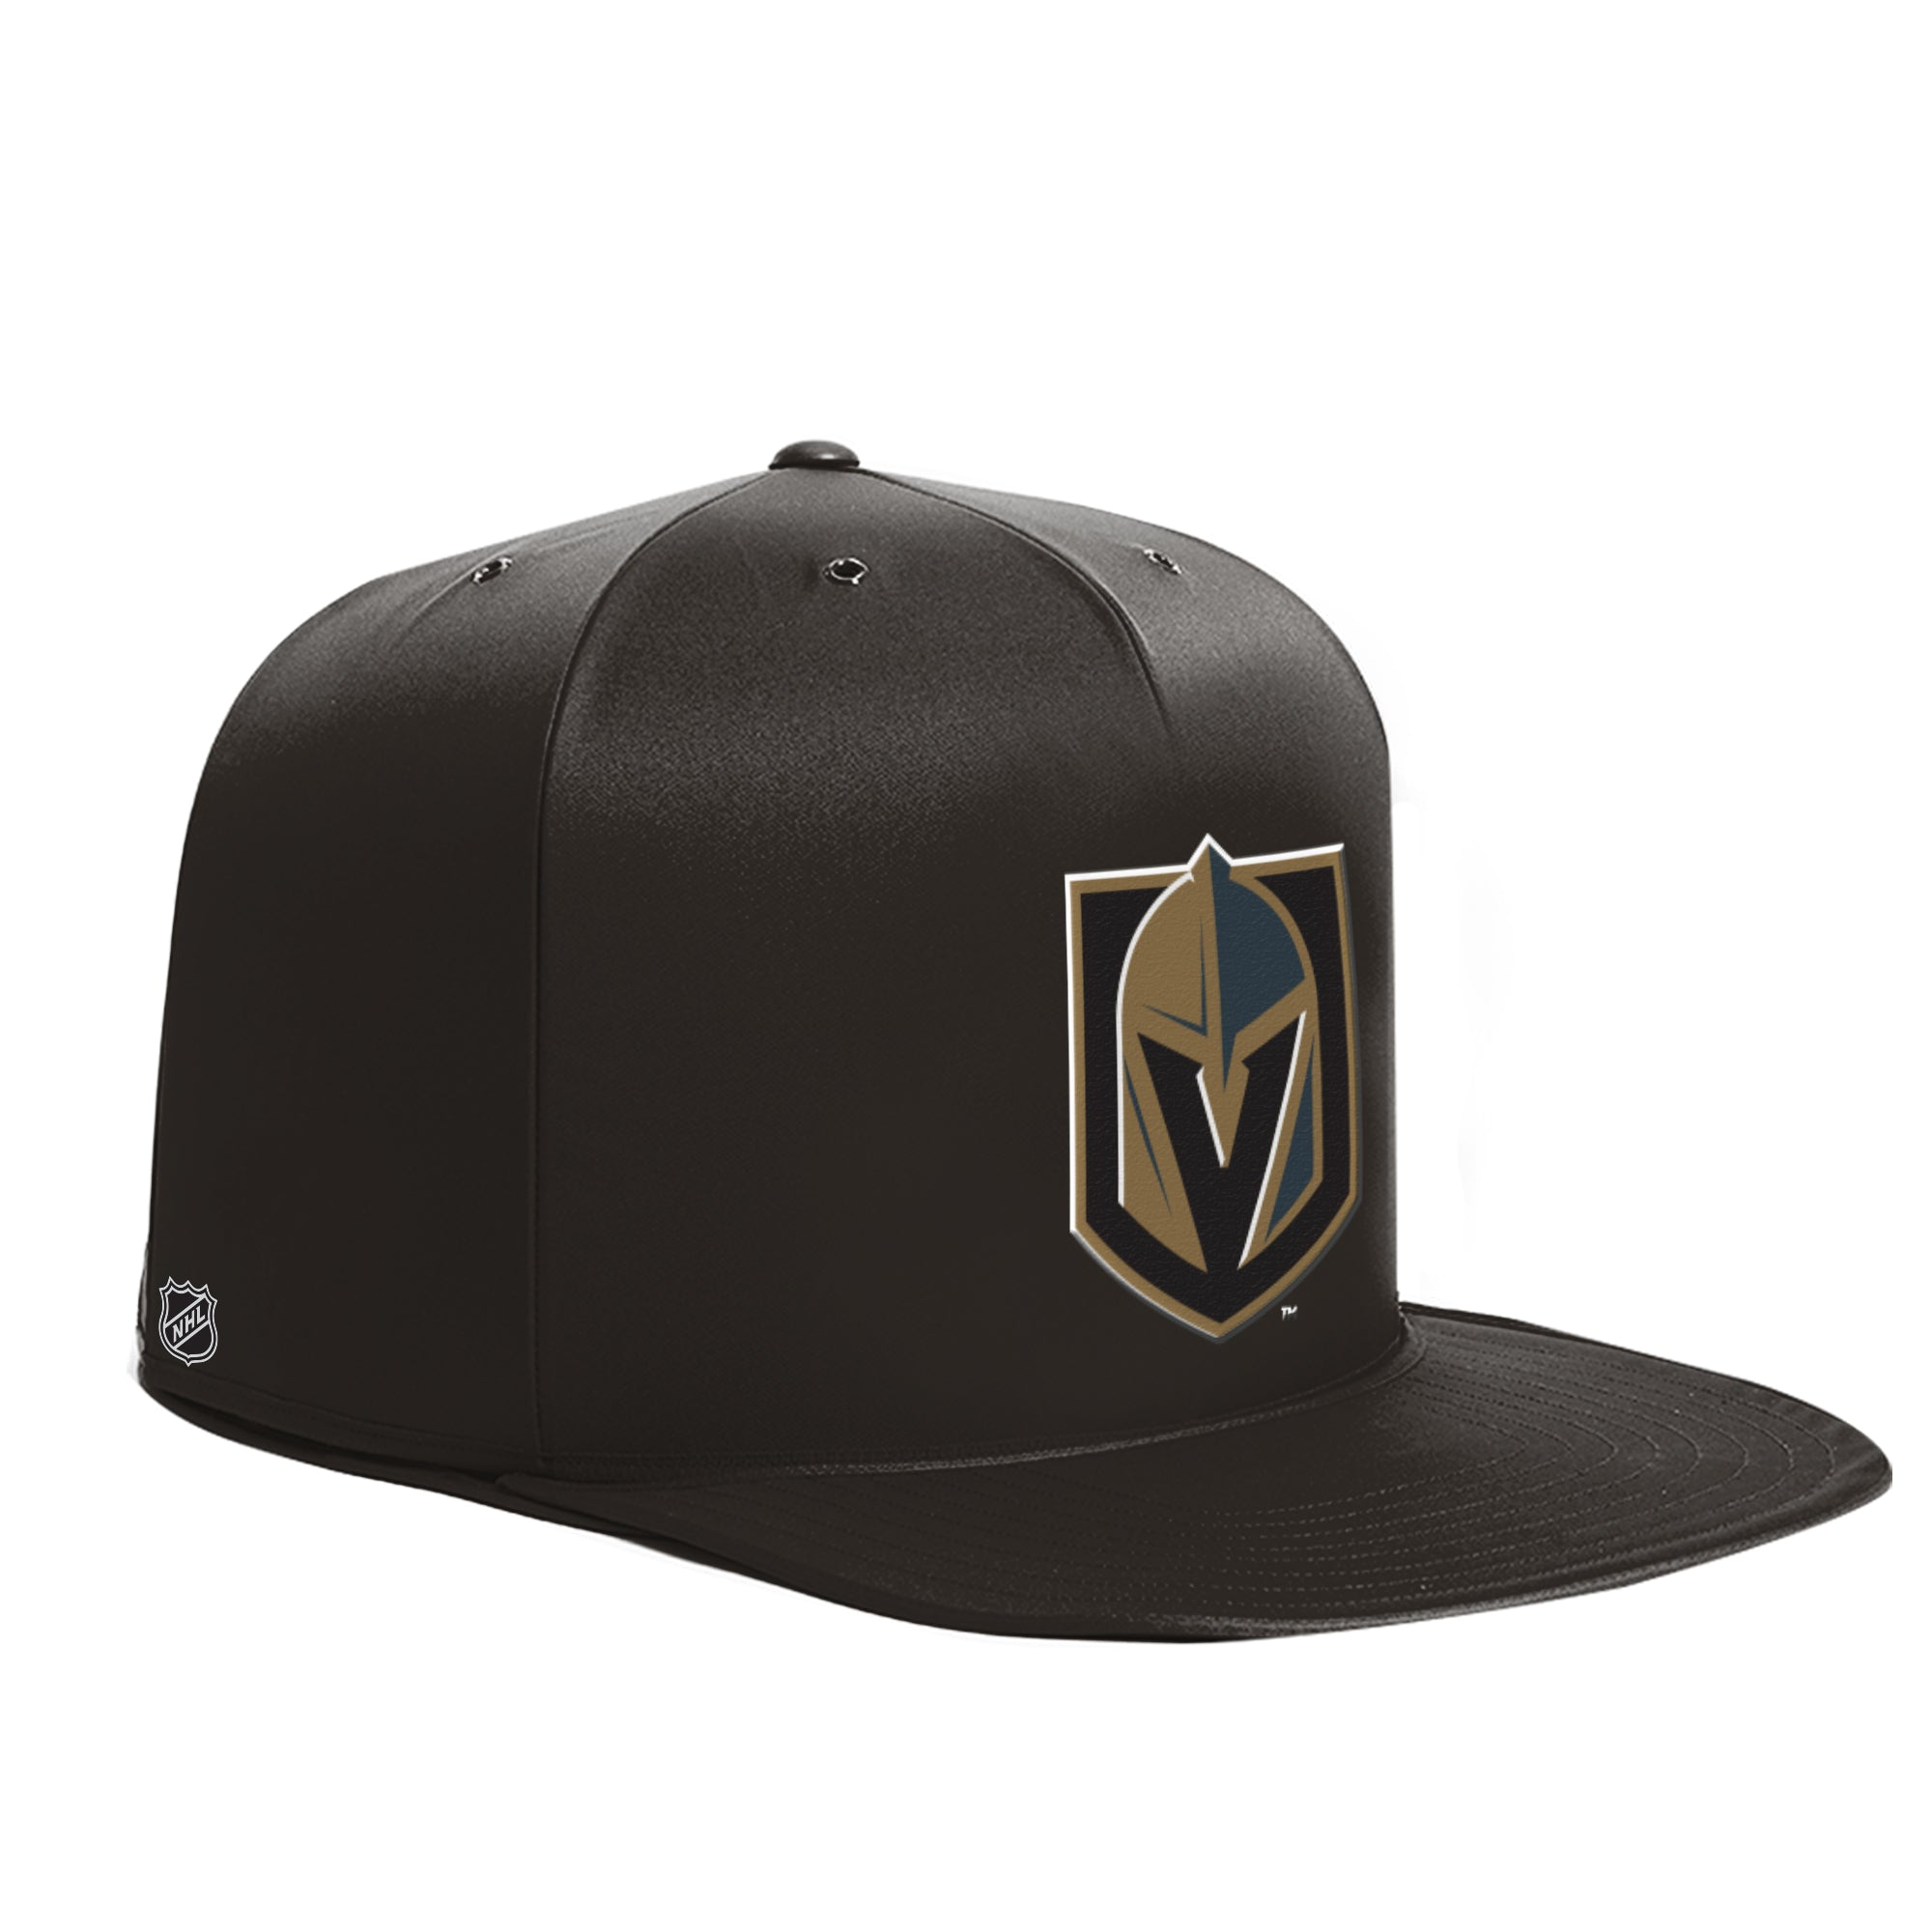 Vegas Golden Knights Nap Cap Dog Bed